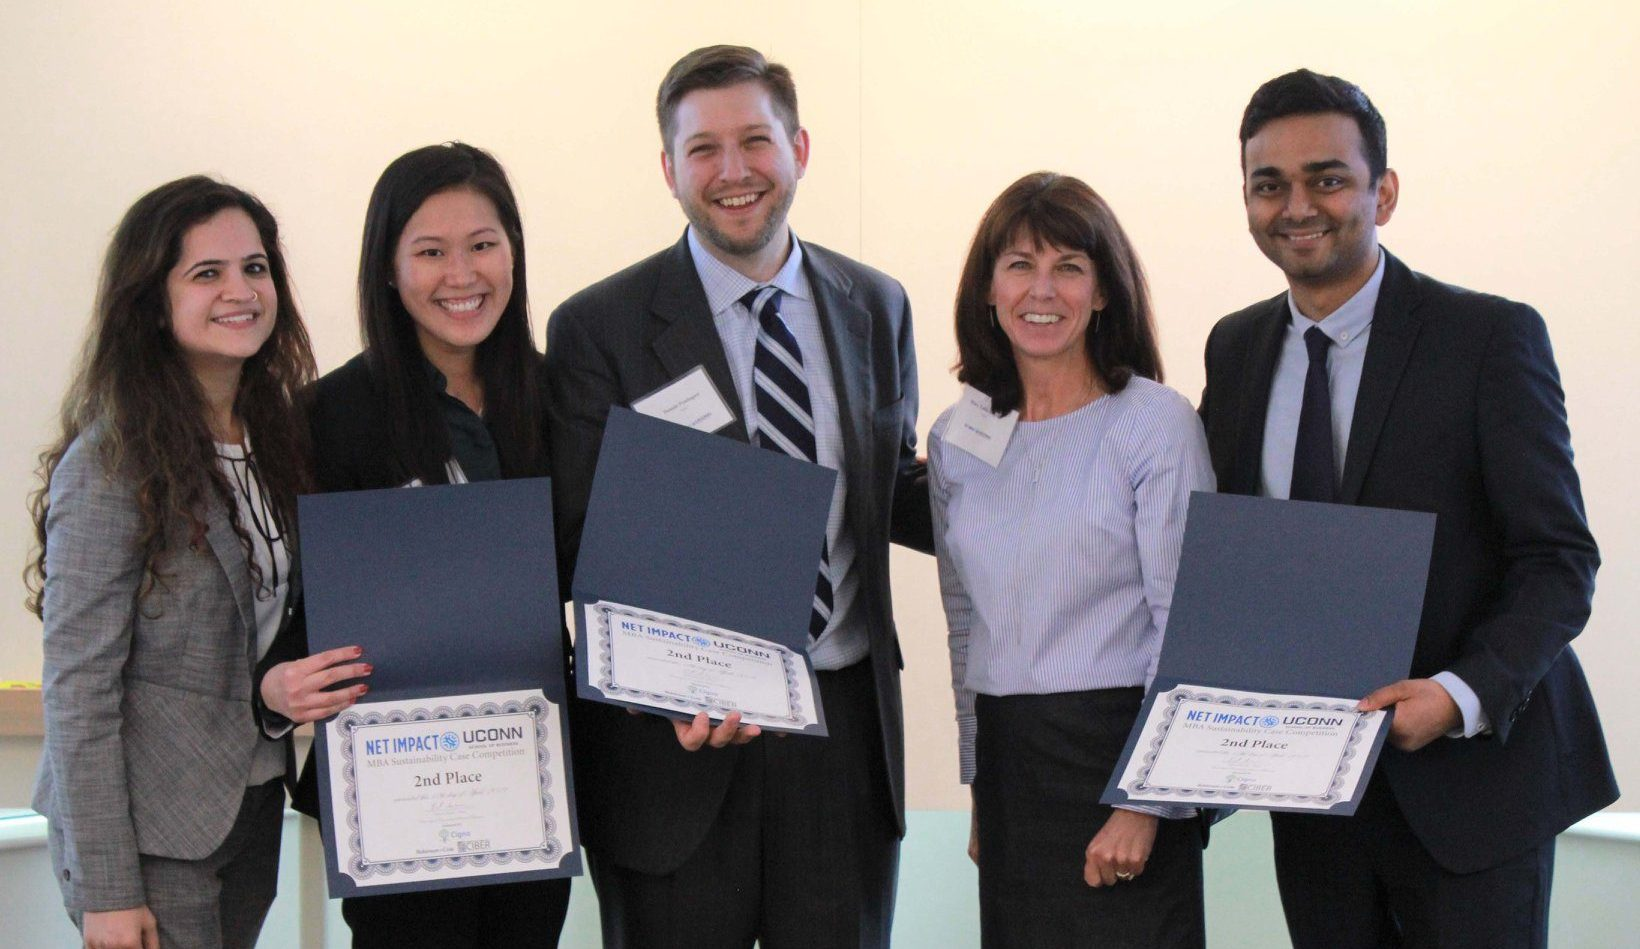 students pose with certificates after case competition